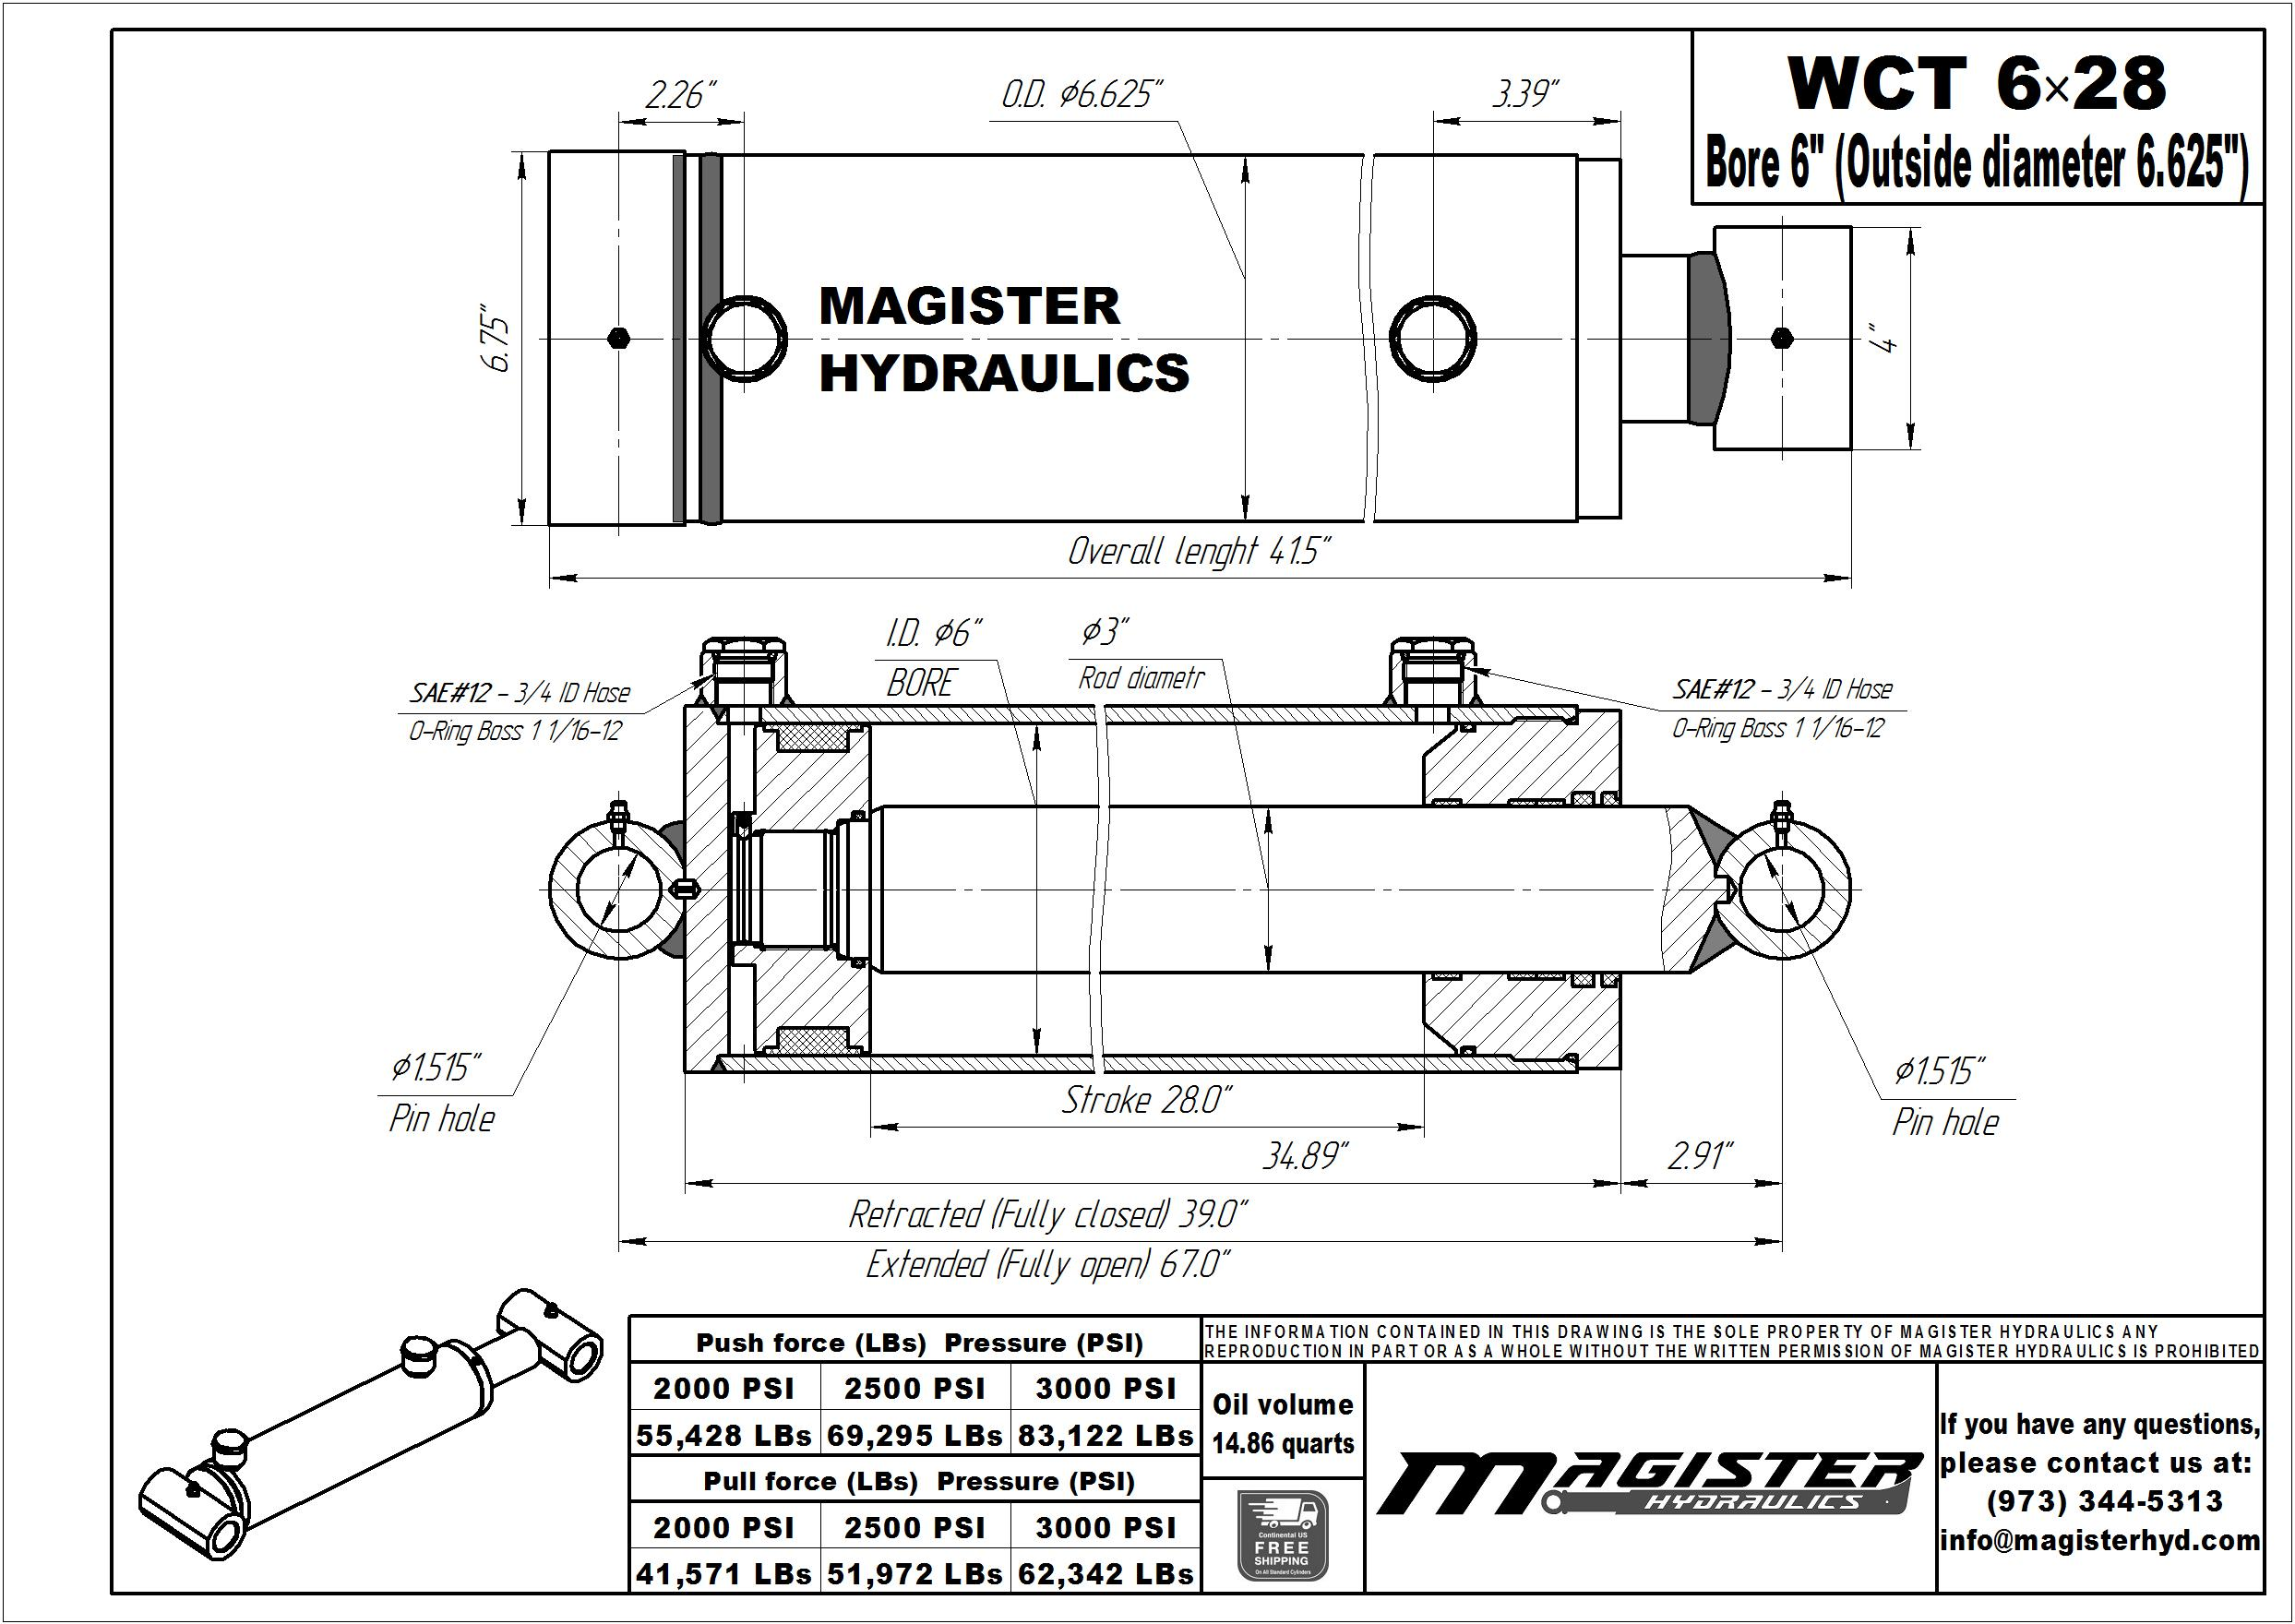 6 bore x 28 stroke hydraulic cylinder, welded cross tube double acting cylinder | Magister Hydraulics